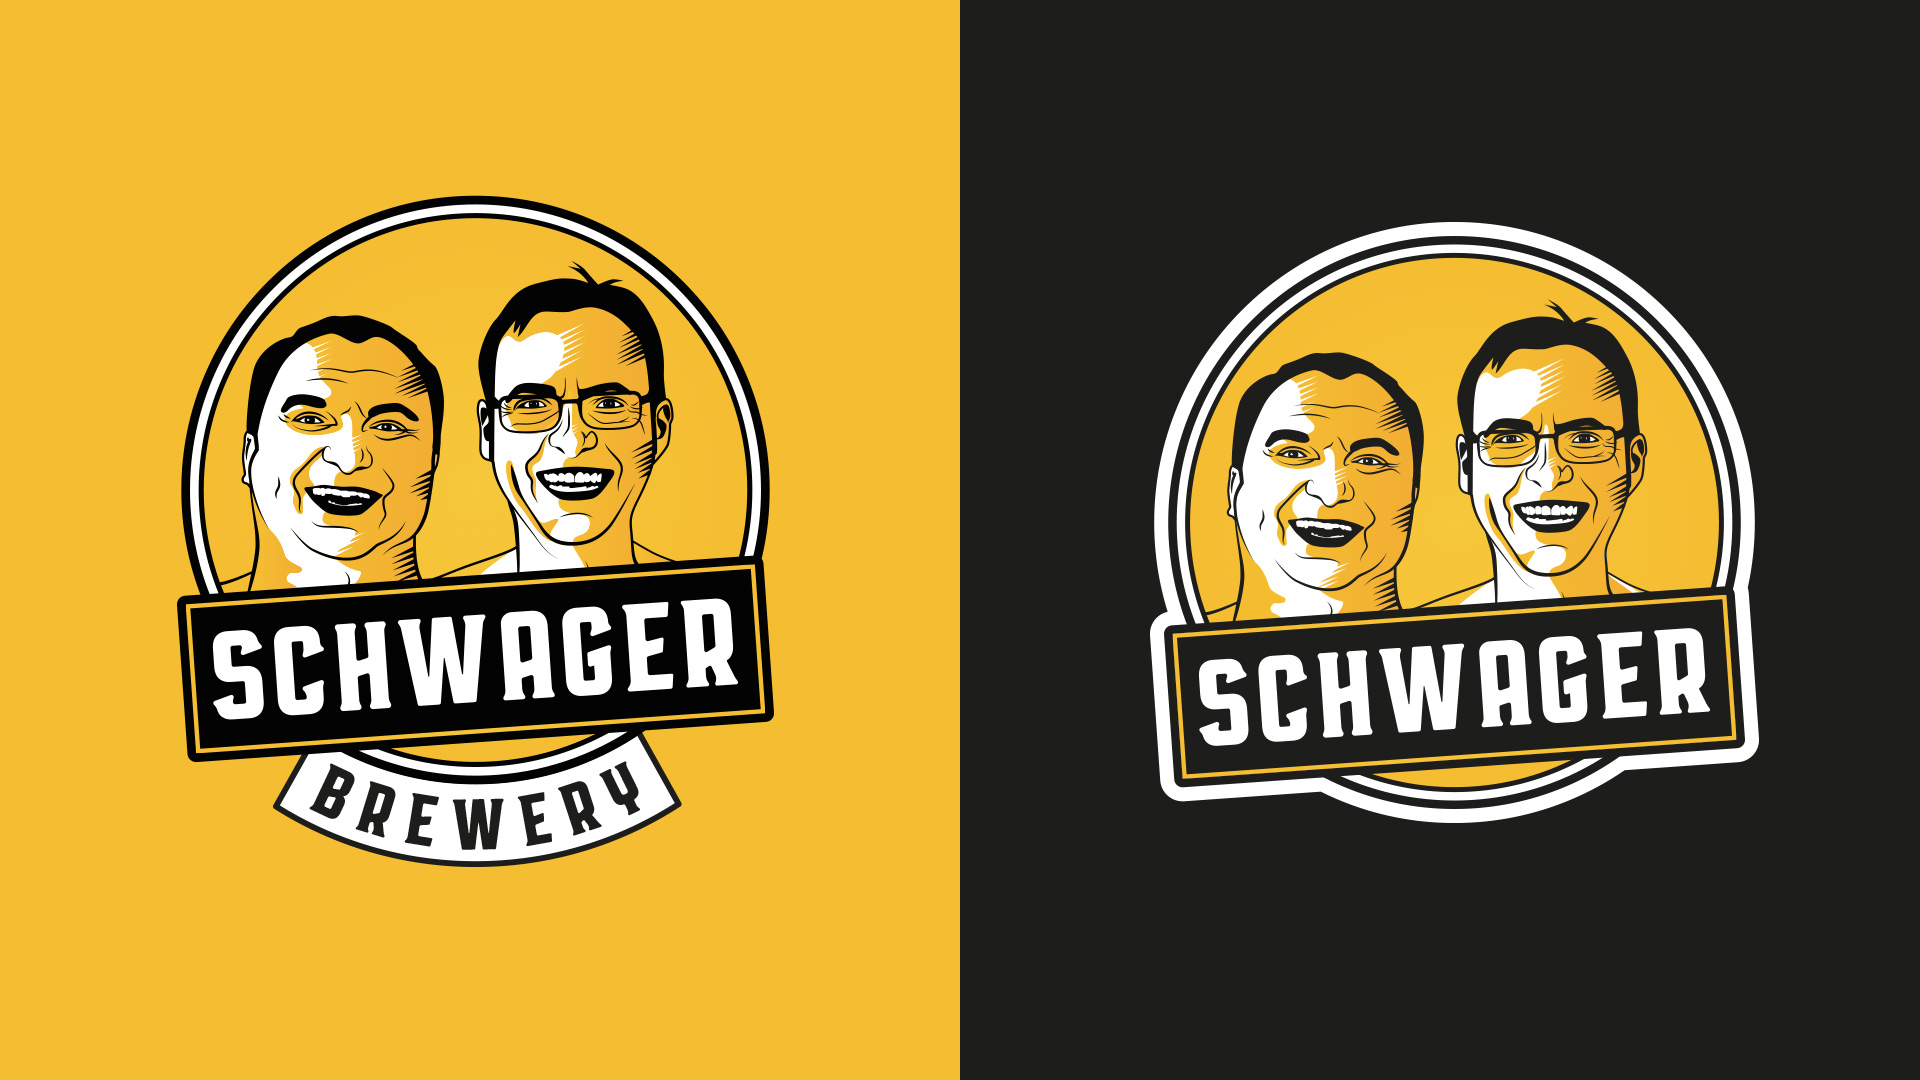 Craft beer company logo Schwager